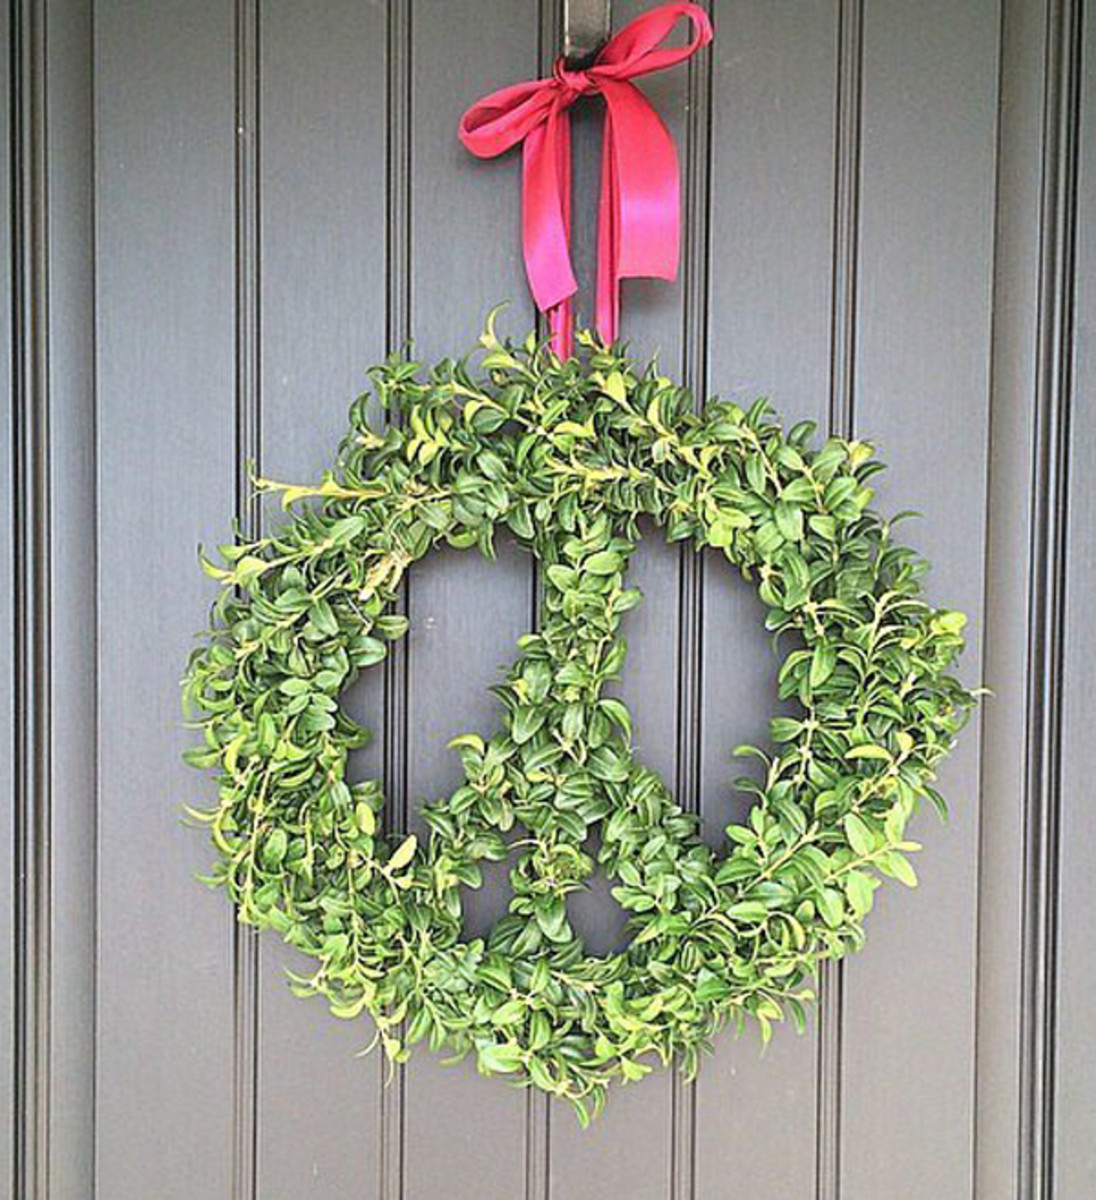 The wreath made for Green Peace.